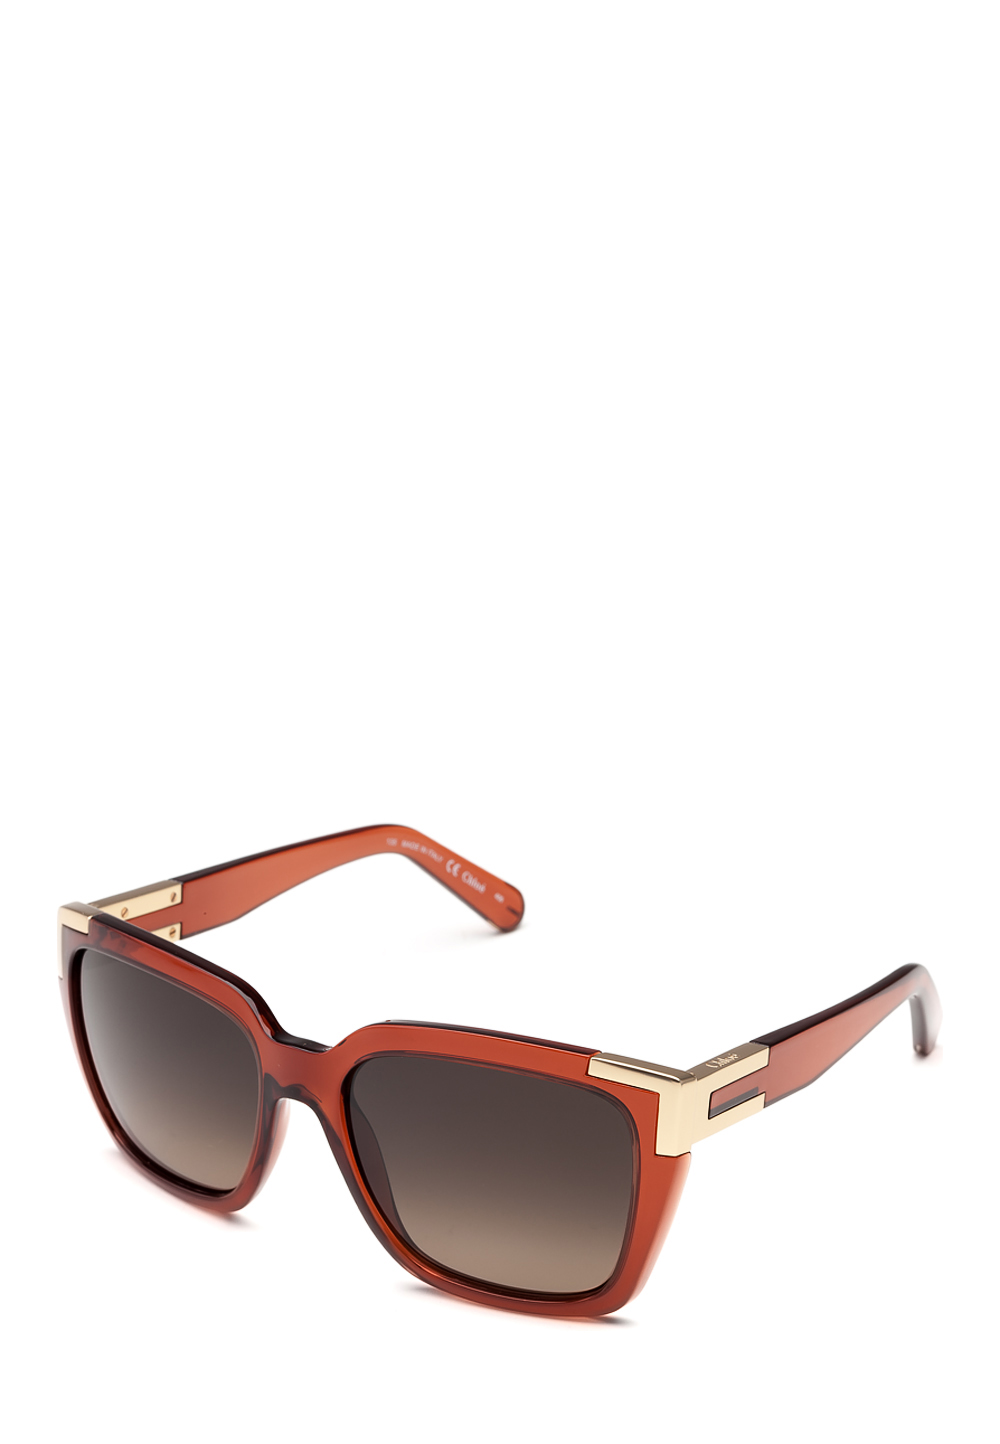 Sonnenbrille Ce632S, UV 400, coral rot